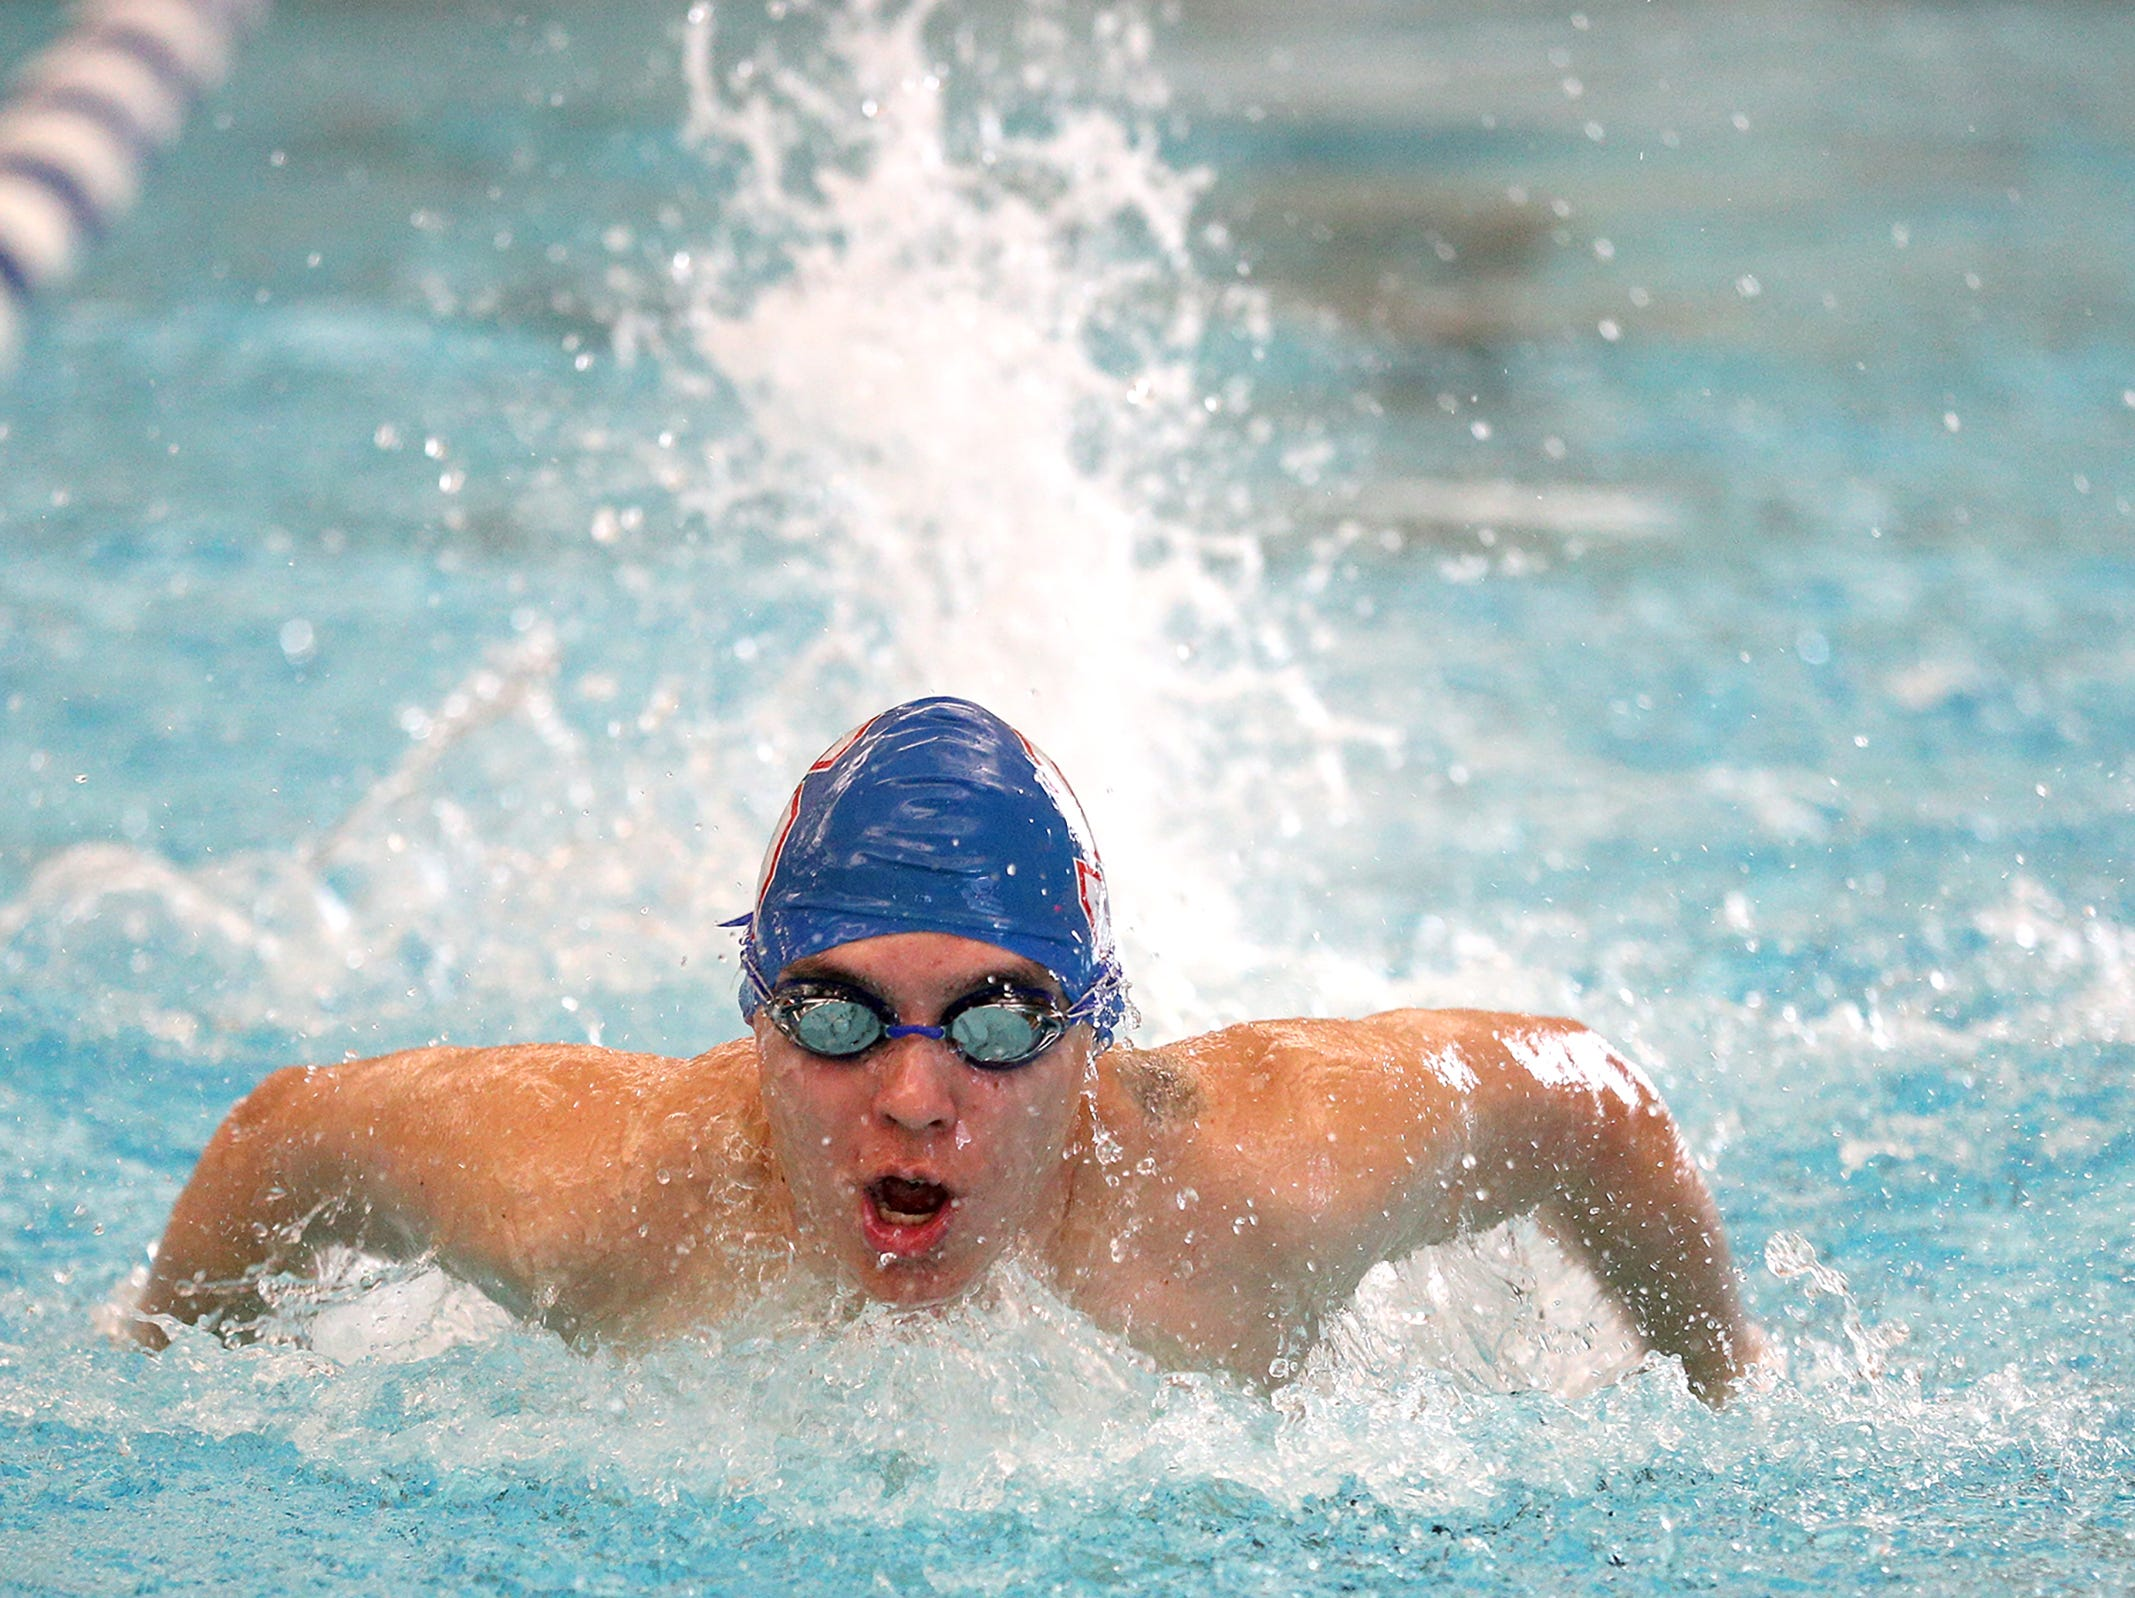 South Salem High school sophomore Quinn Otto during the boys 200 IM at the Kroc Center on Tuesday, Jan. 29, 2019.